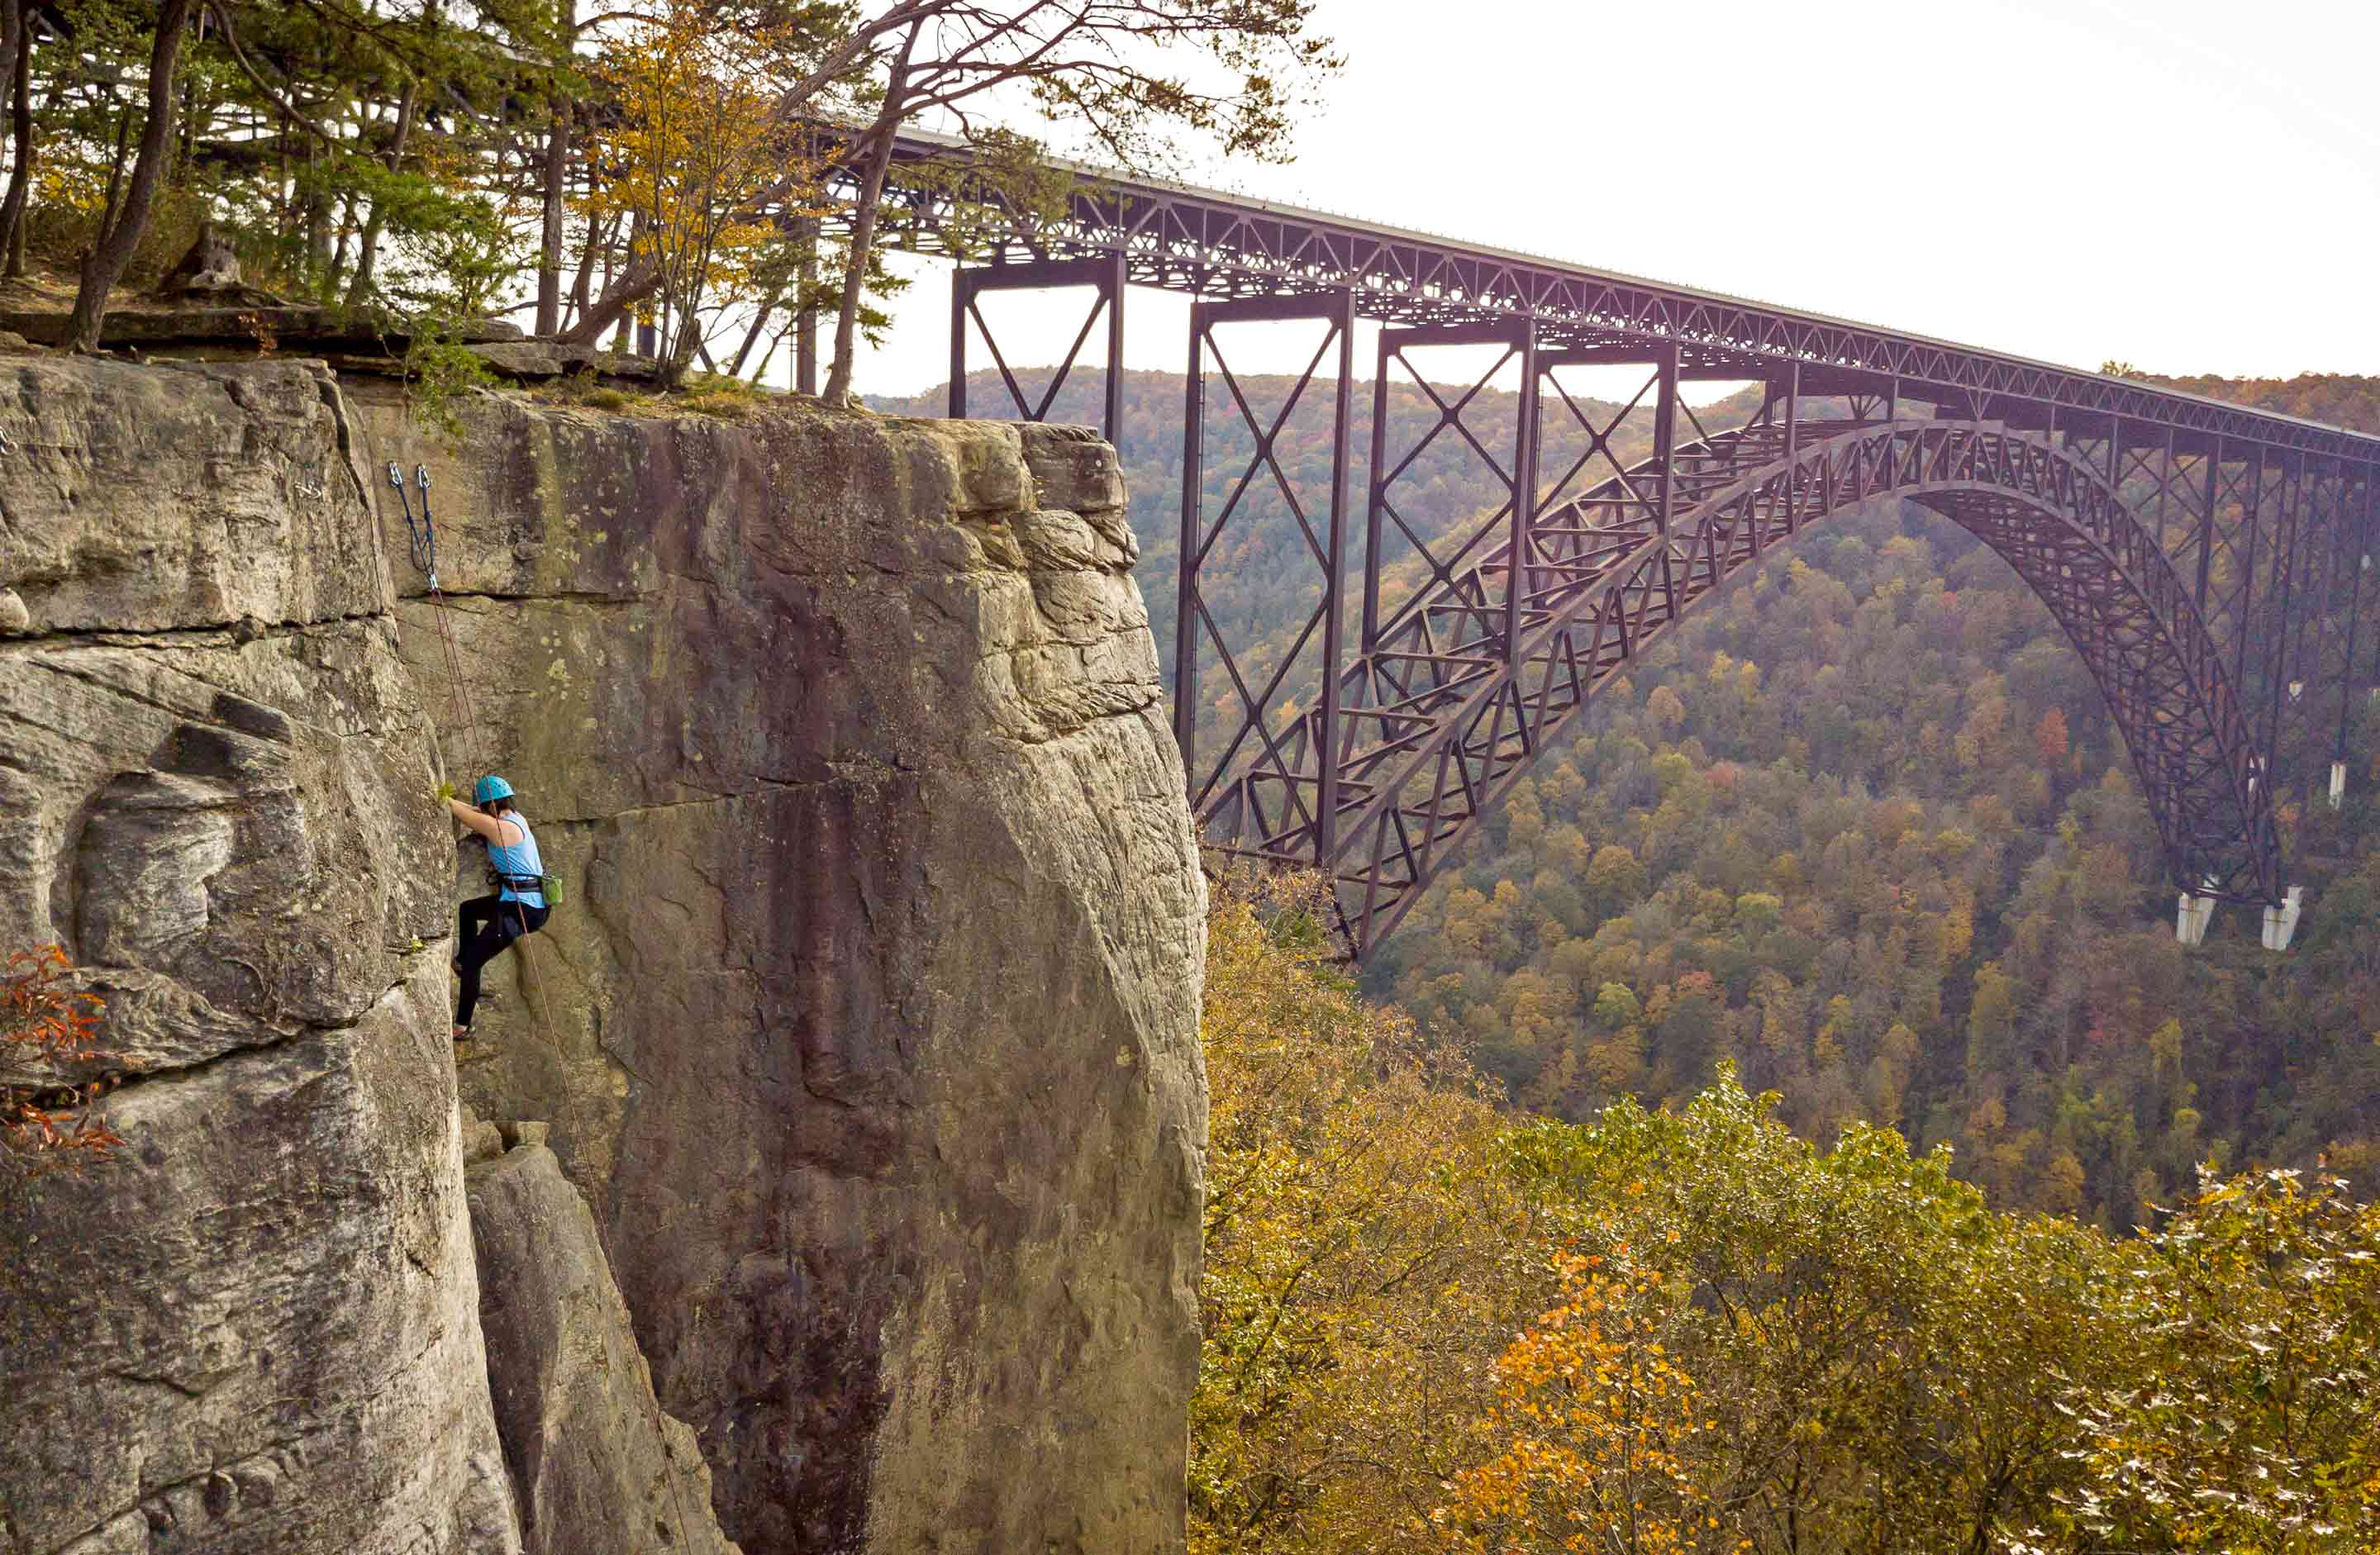 Climbing in the Lower New River Gorge with the New River Gorge Bridge in the background in West Virginia.